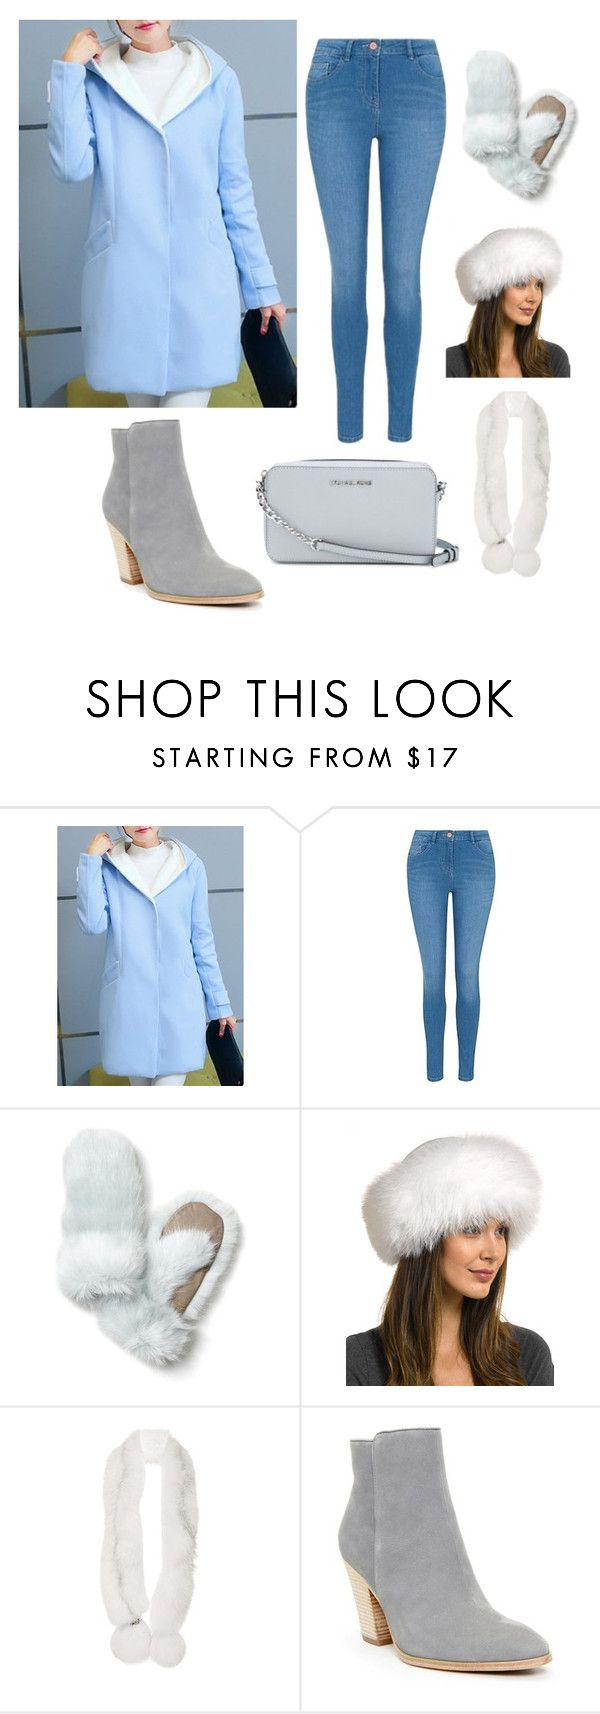 """white fur"" by dinamahmoud ❤ liked on Polyvore featuring George, Banana Republic, FRR, Georgine, Donald J Pliner and MICHAEL Michael Kors"